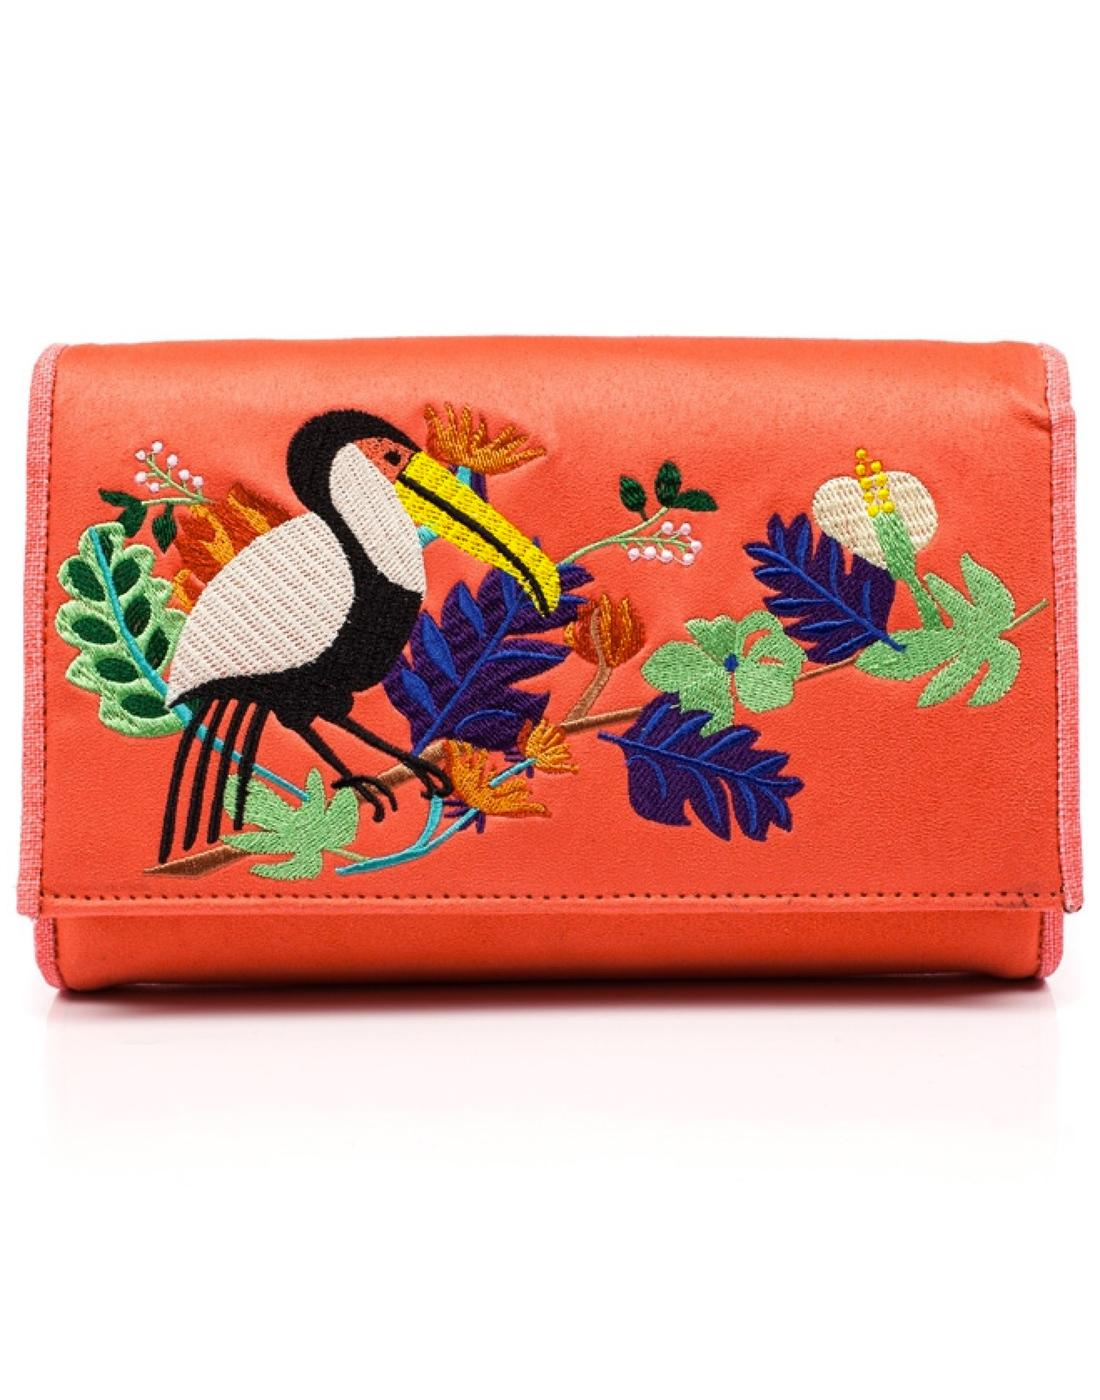 Birdy Beauty IRREGULAR CHOICE Travel Wallet (O)